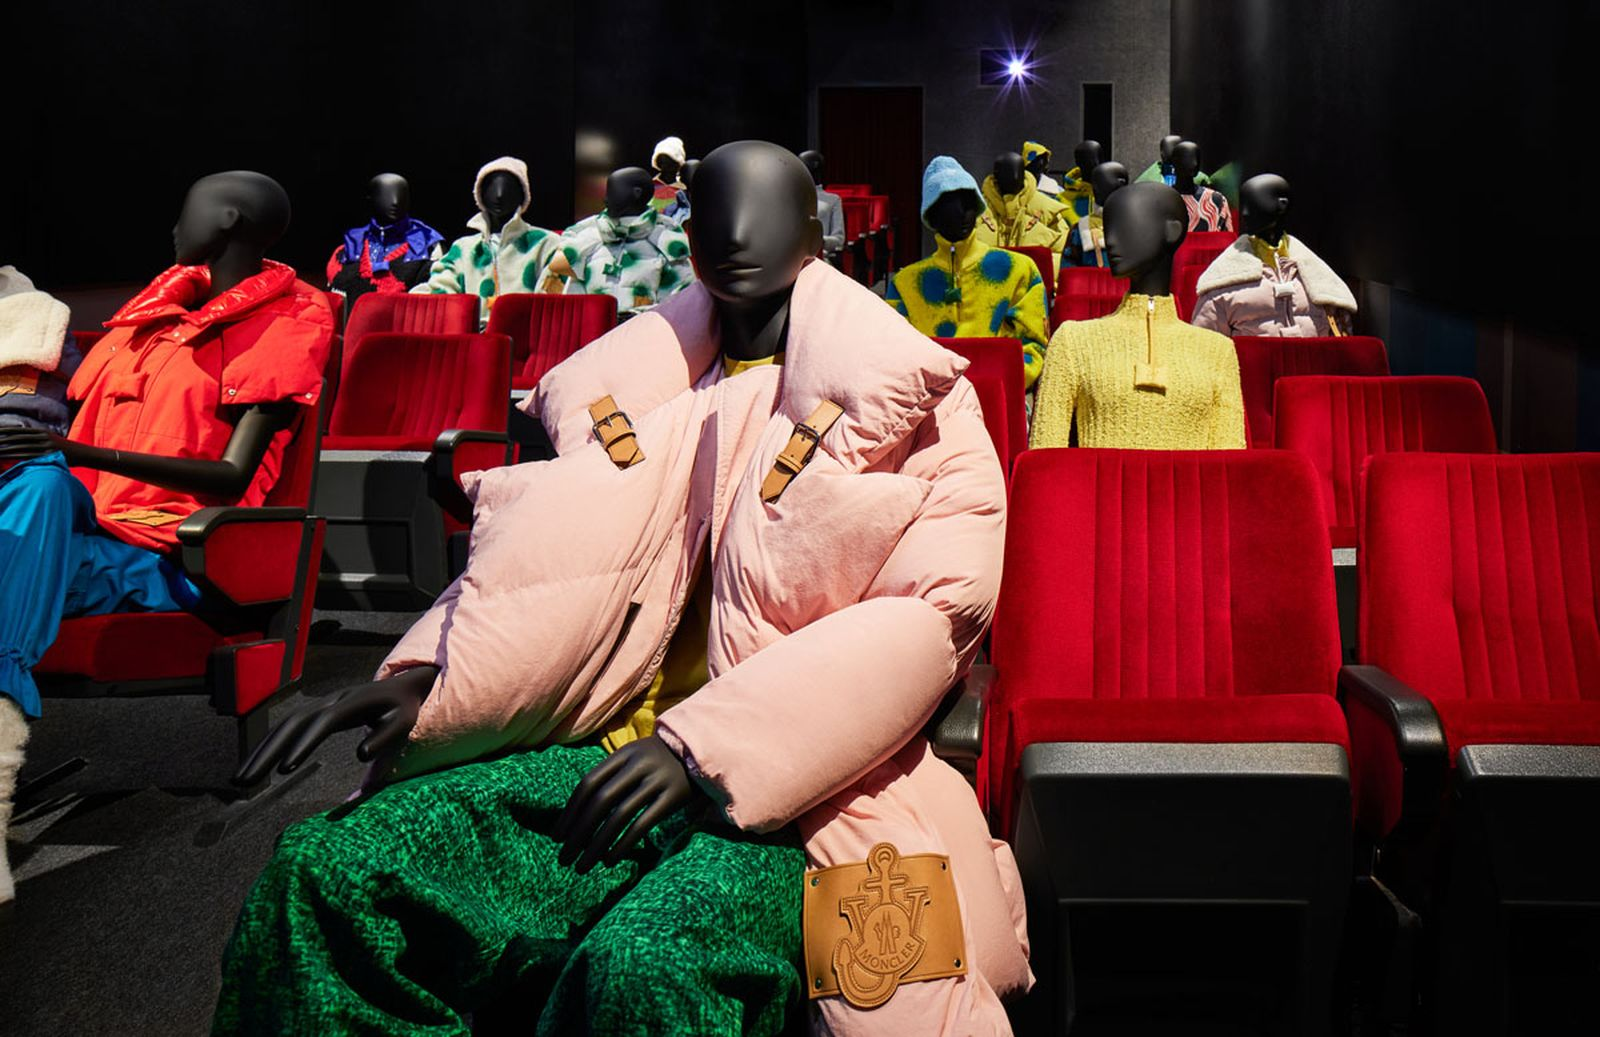 1_Moncler_JW_ANDERSON_installation_with_mannequines_03